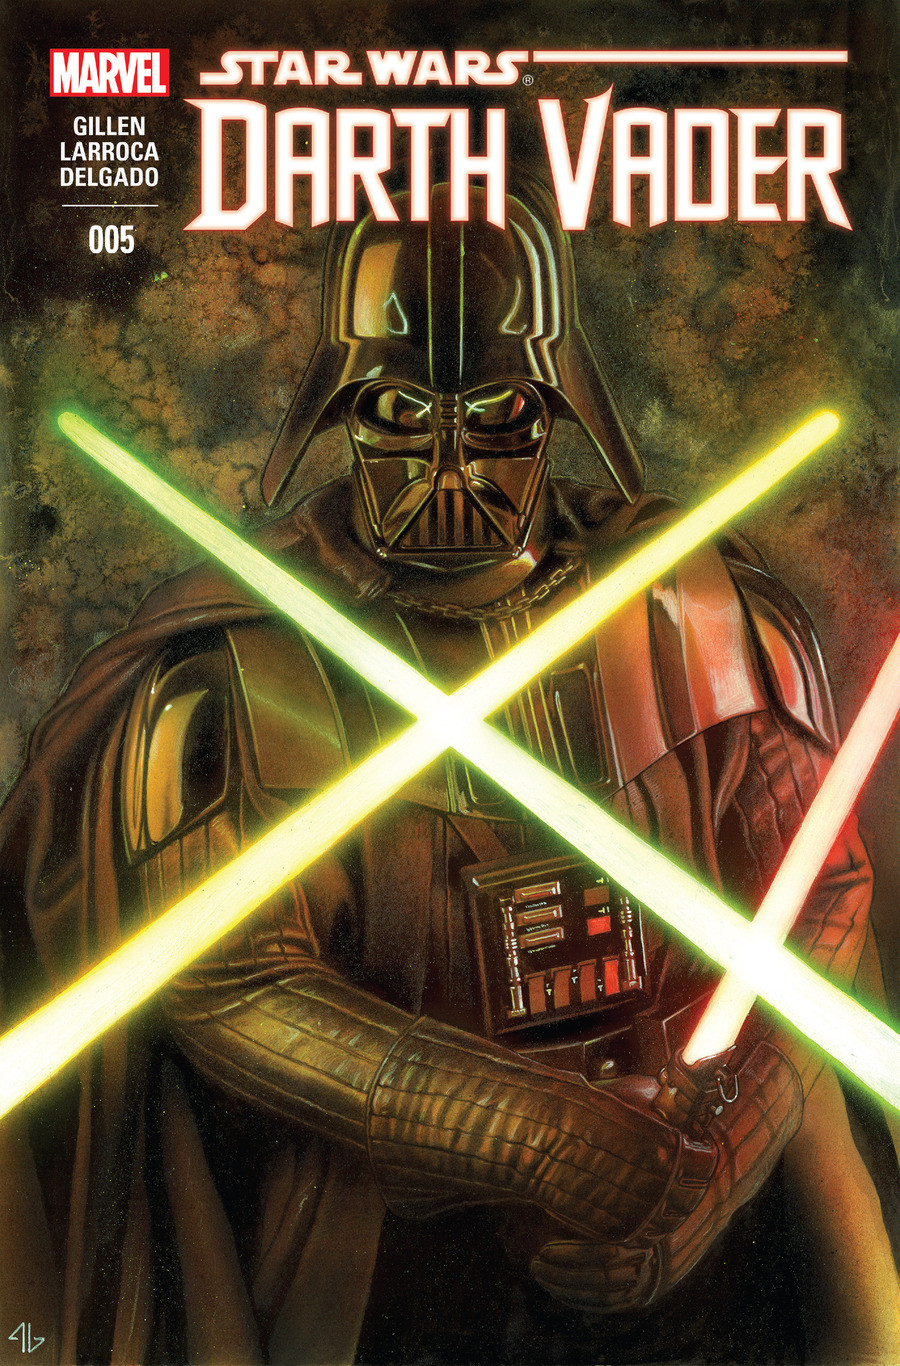 Star Wars Darth Vader issue 5. join list: StarWarsDarthVader (284 subs)Mention History The fifth issue of the canon Darth Vader comic series If you havent read